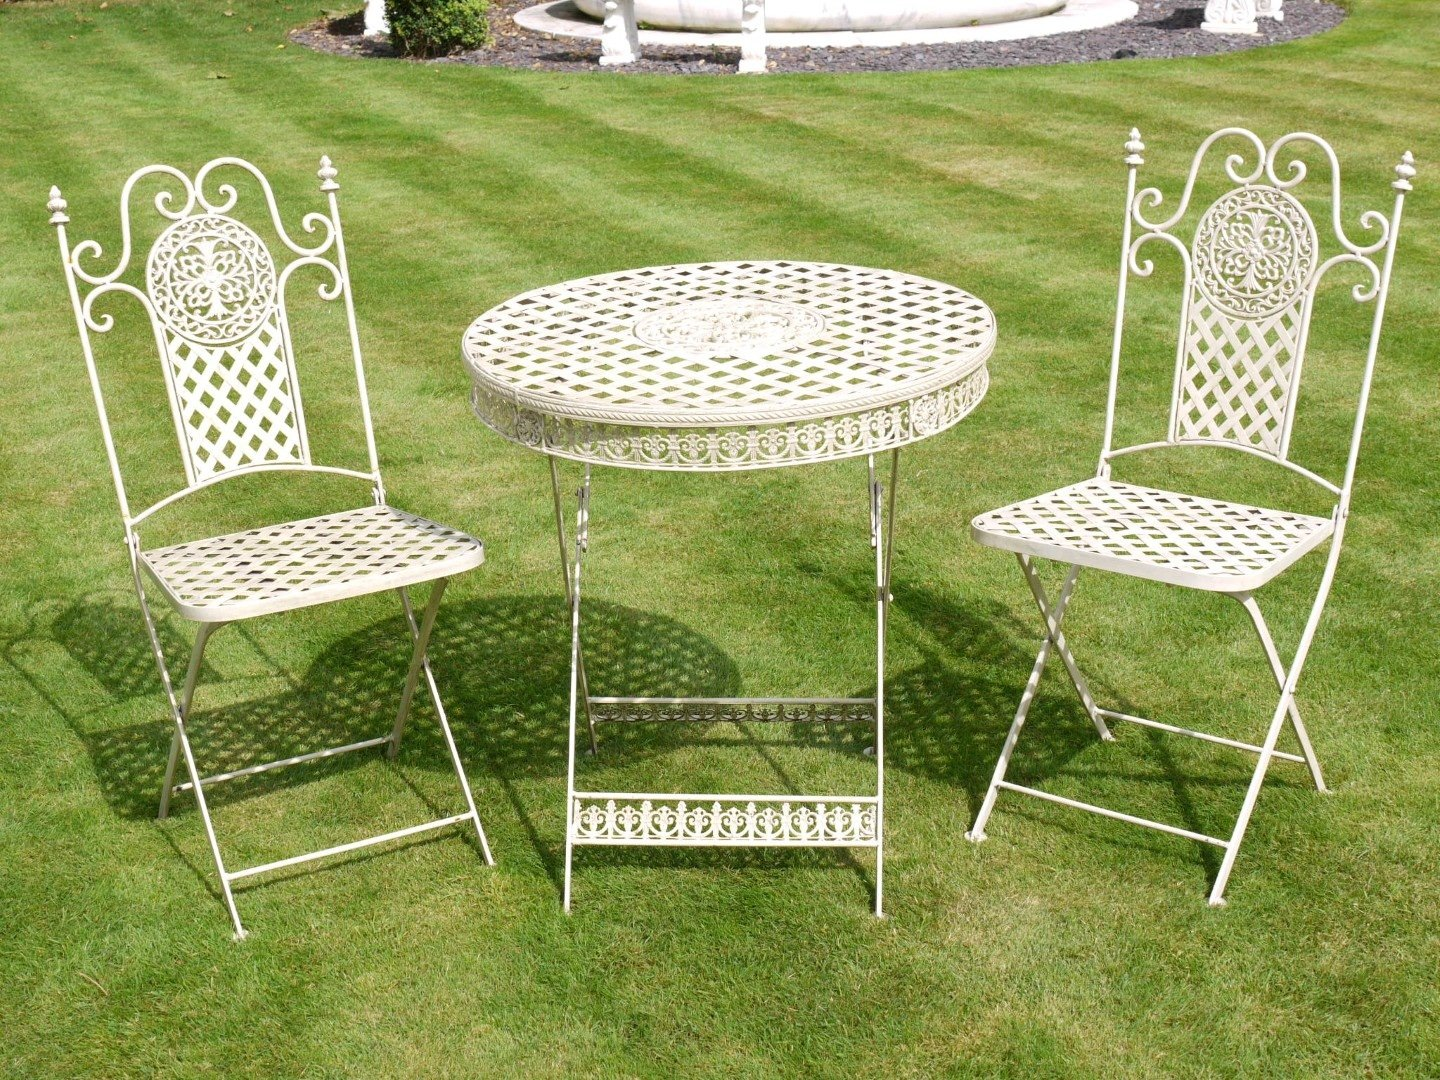 Pleasing Get Goods 3 Piece Bistro Style Garden Patio Furniture Set Whites Best Image Libraries Weasiibadanjobscom